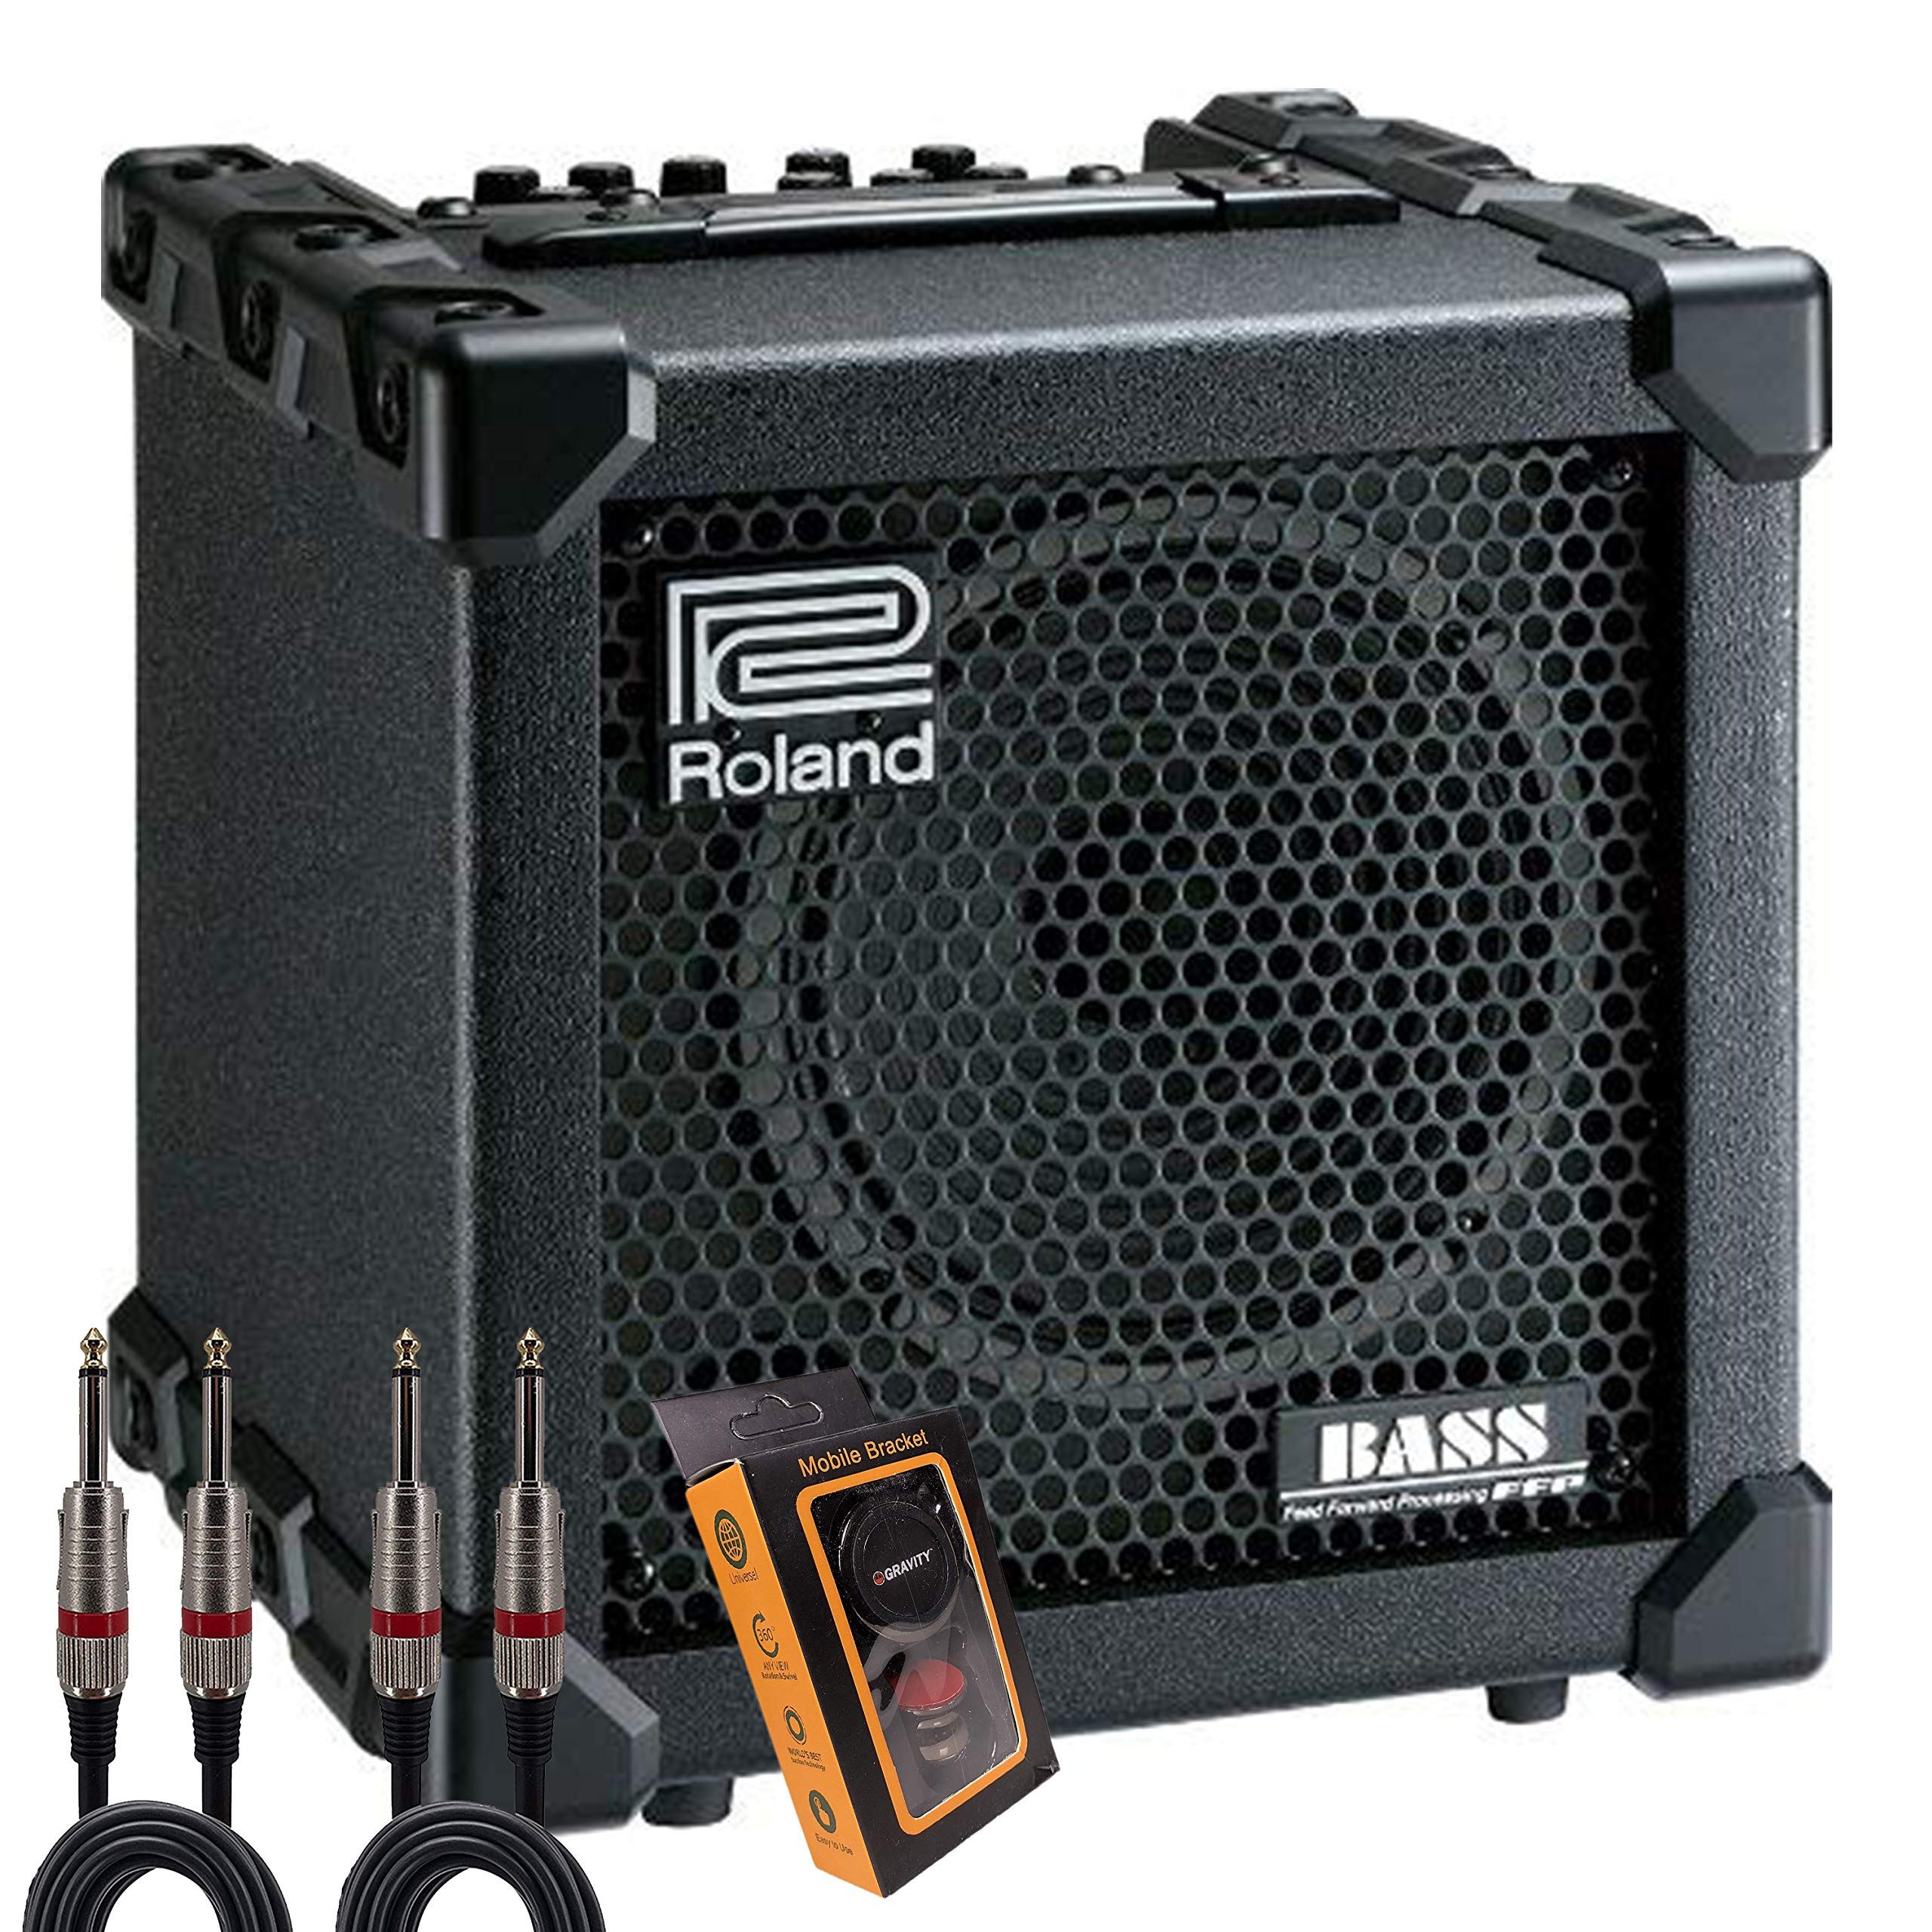 Roland CUBE-20XL 20-Watt 1x8-Inch Bass Combo Amp + Cable Starter Pack with Magnet Phone Holder QTQ+M by Roland